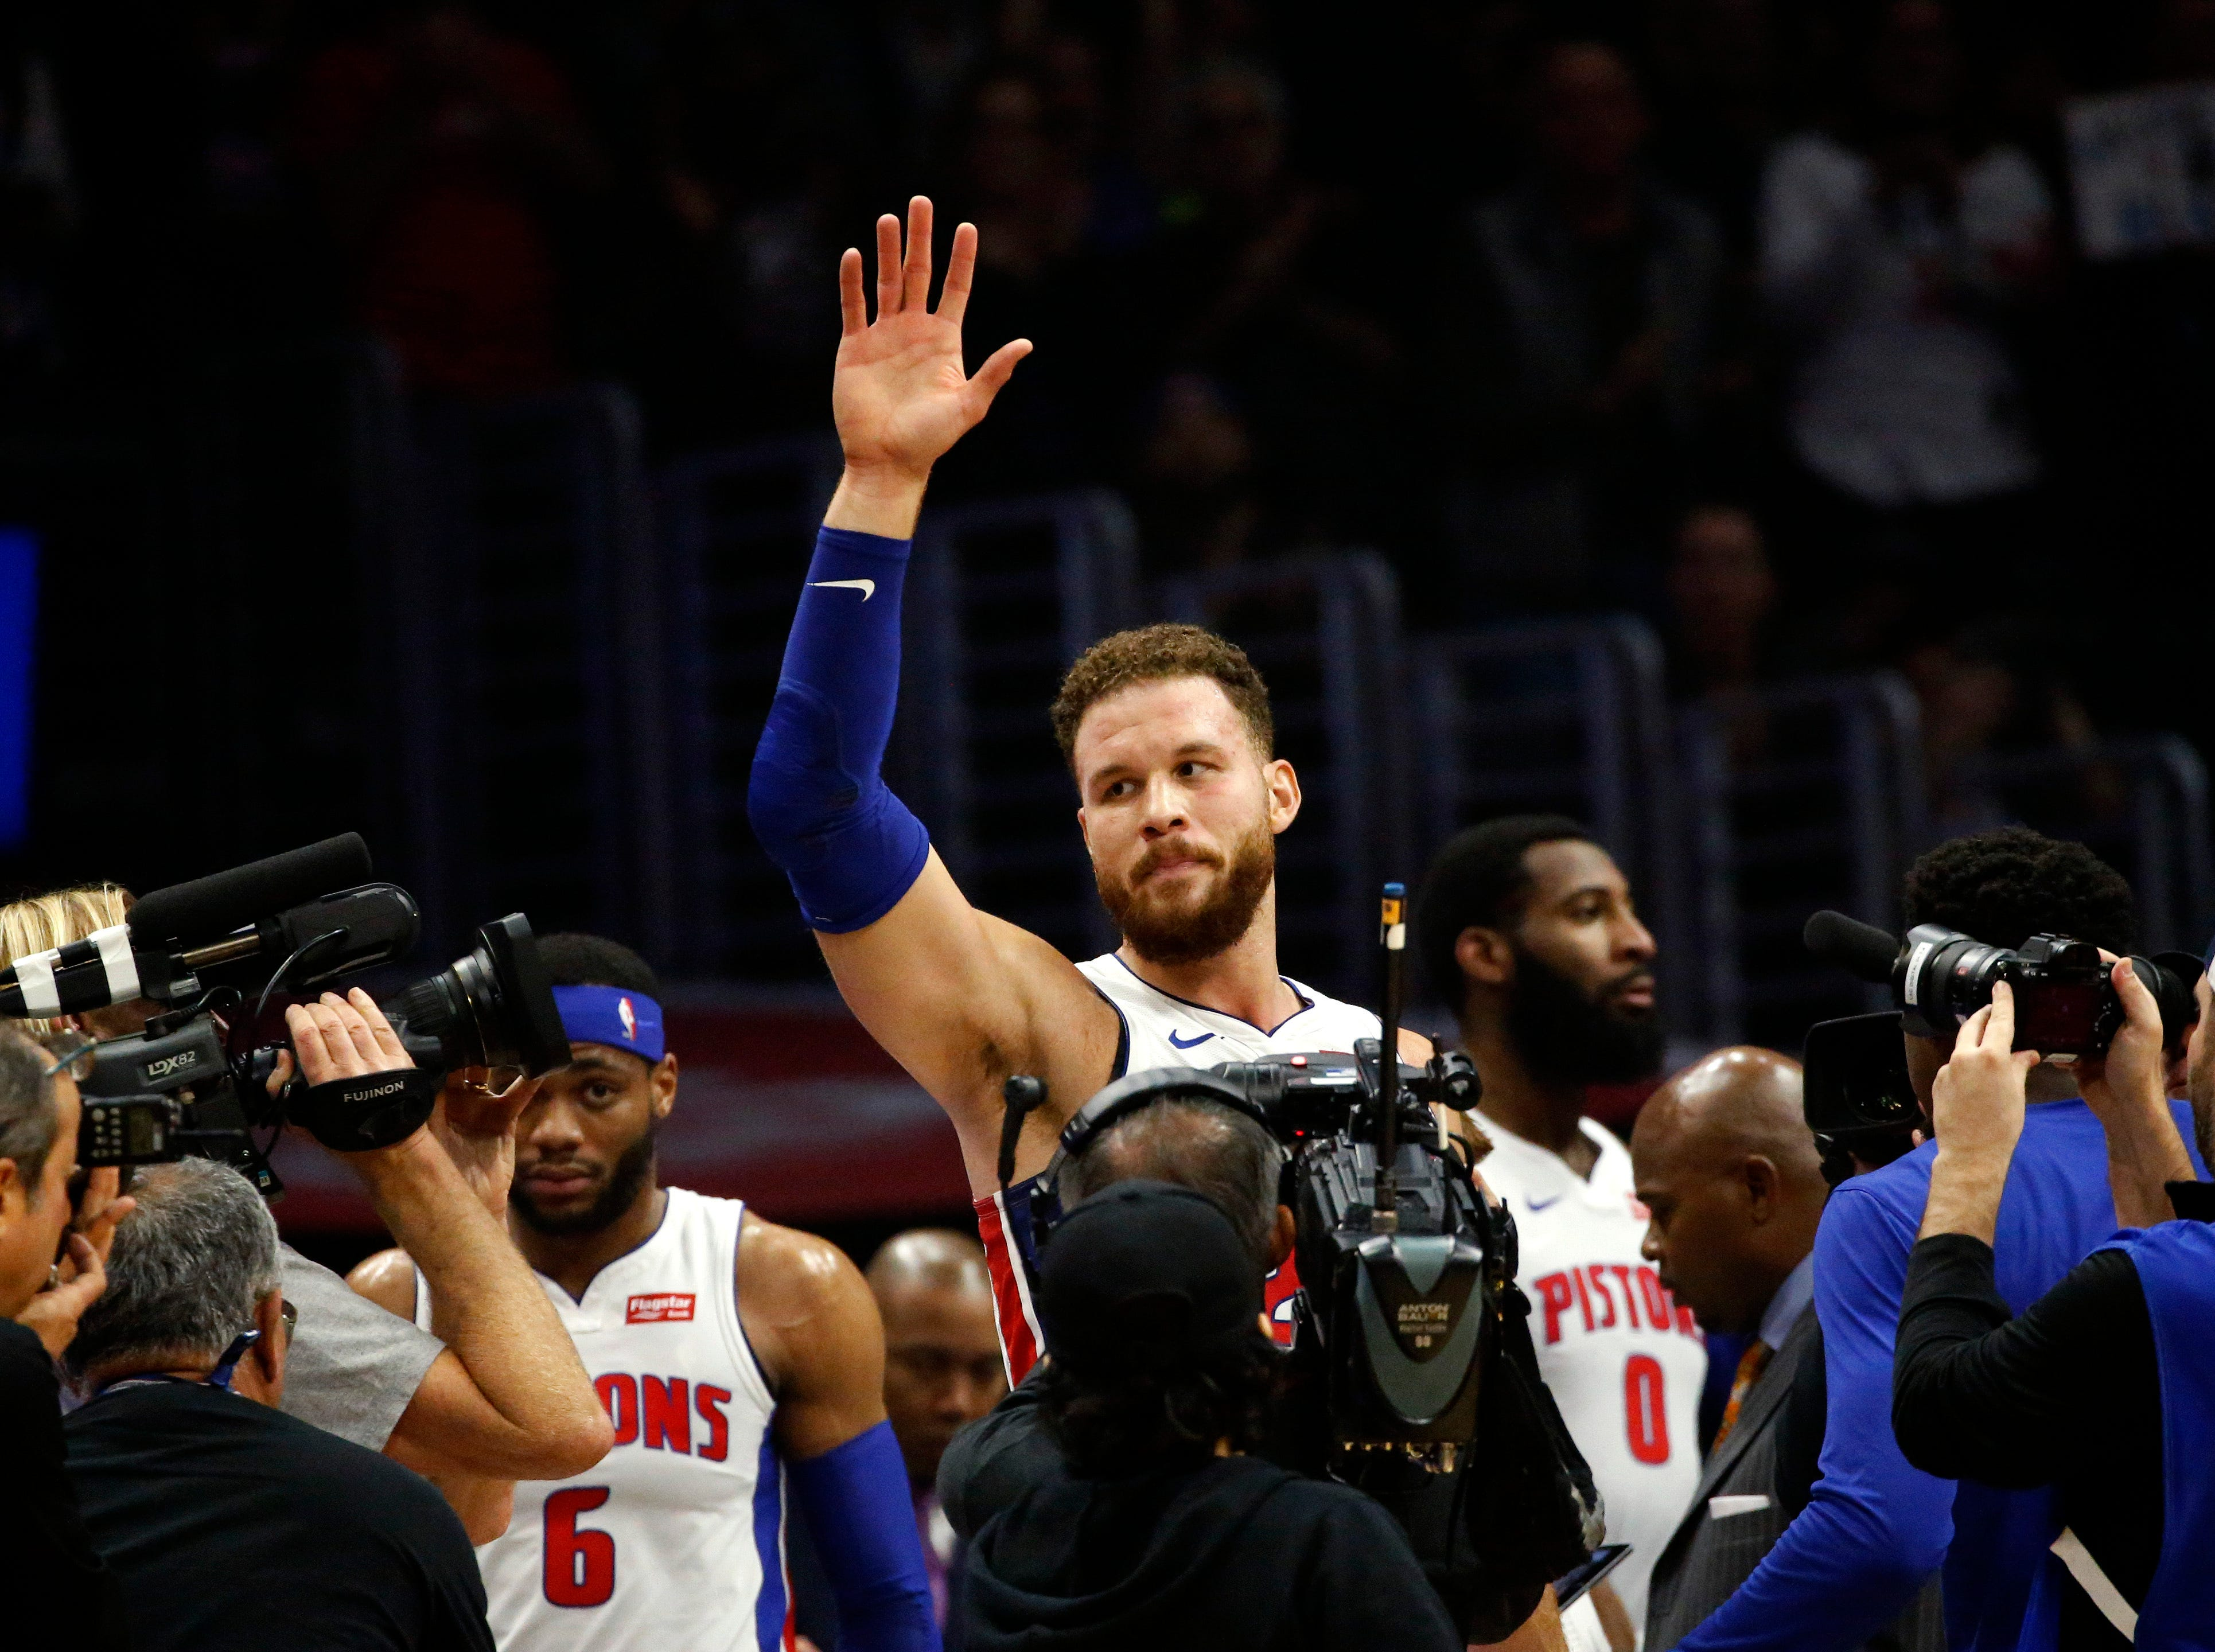 Detroit Pistons' Blake Griffin waves to fans of his former team during the first half of a game against the Los Angeles Clippers Saturday.